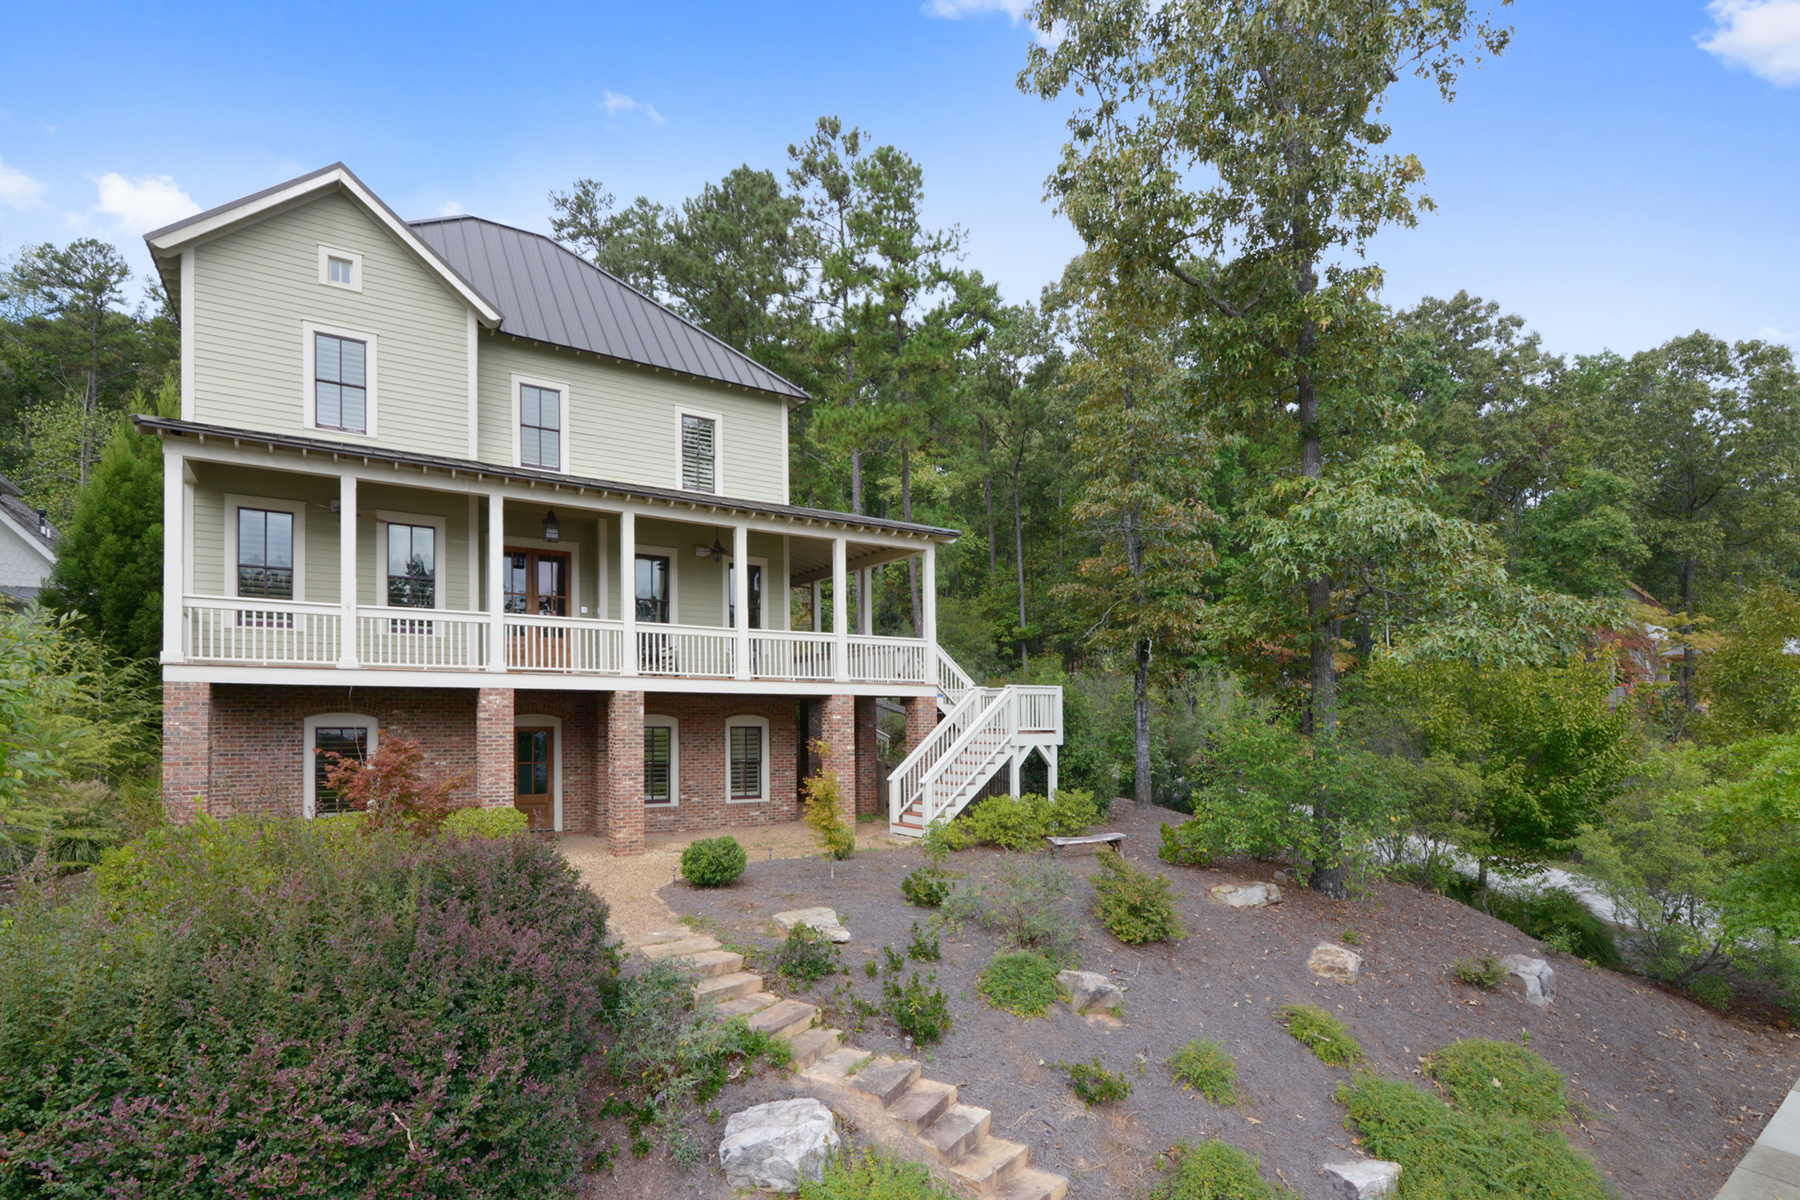 Additional photo for property listing at Upscale Serenbe Farmhouse-Style Home 10723 Serenbe Lane Chattahoochee Hills, Georgien 30268 Usa